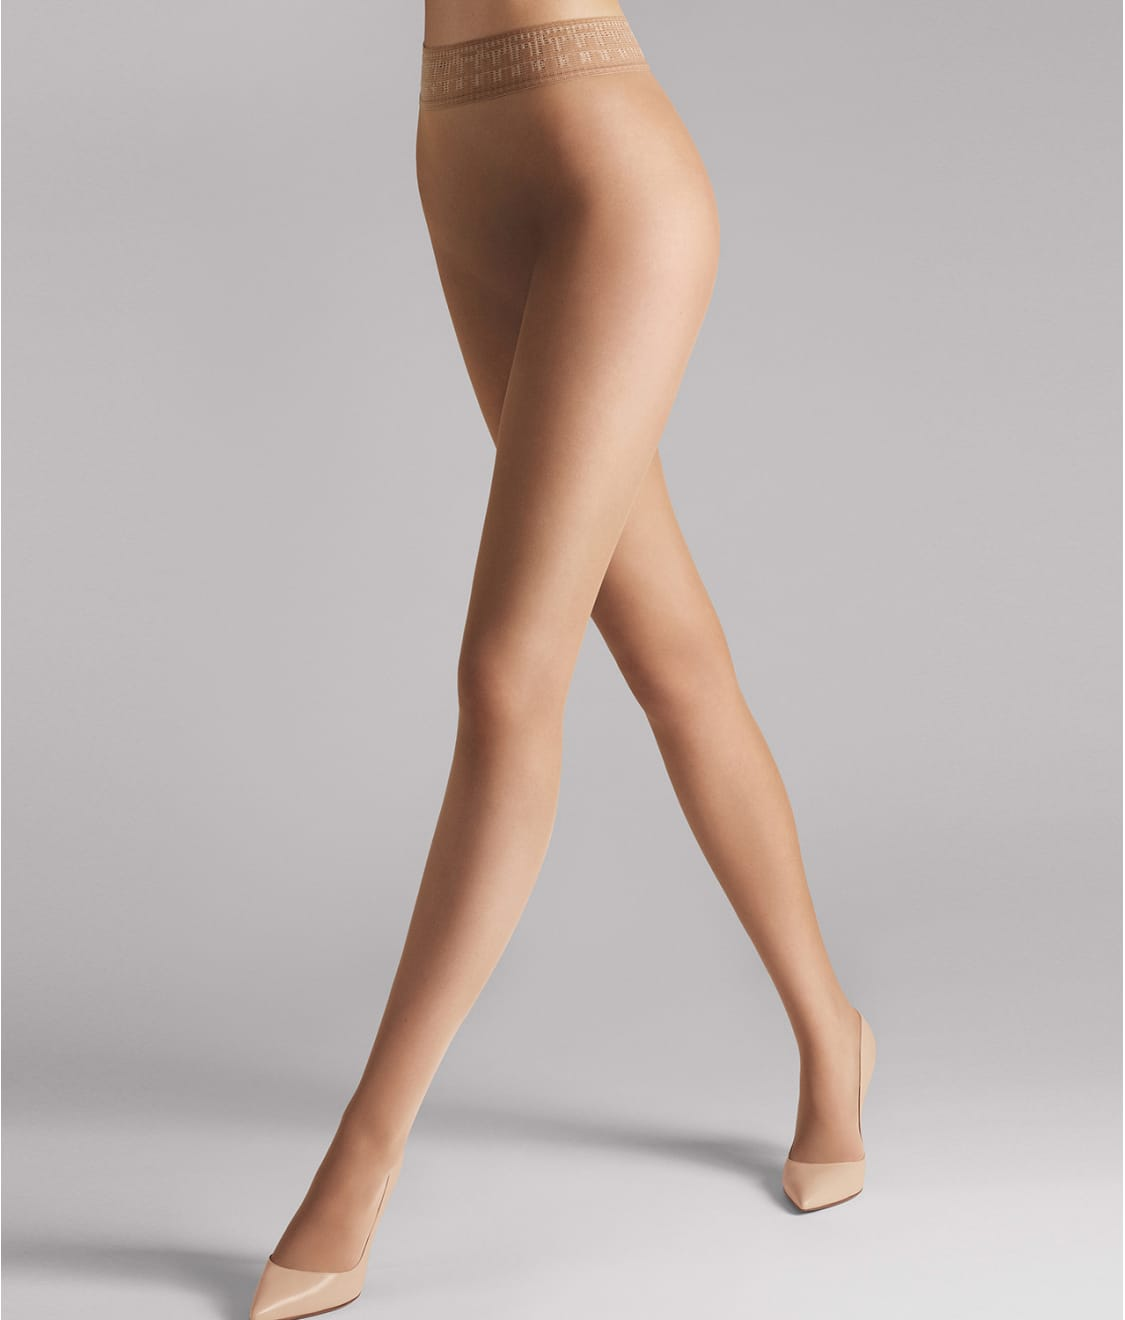 589ee1195 Wolford Fatal 15 Denier Seamless Pantyhose